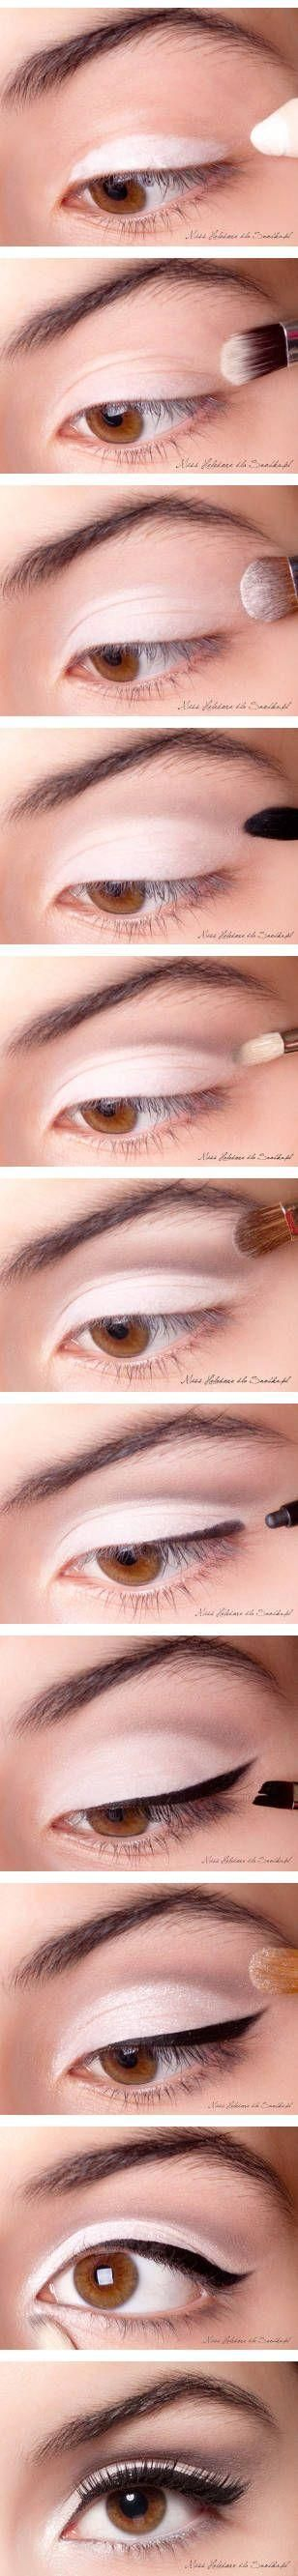 Simple way to brighten your eyes and make it seem as though you took the time and effort to do your makeup